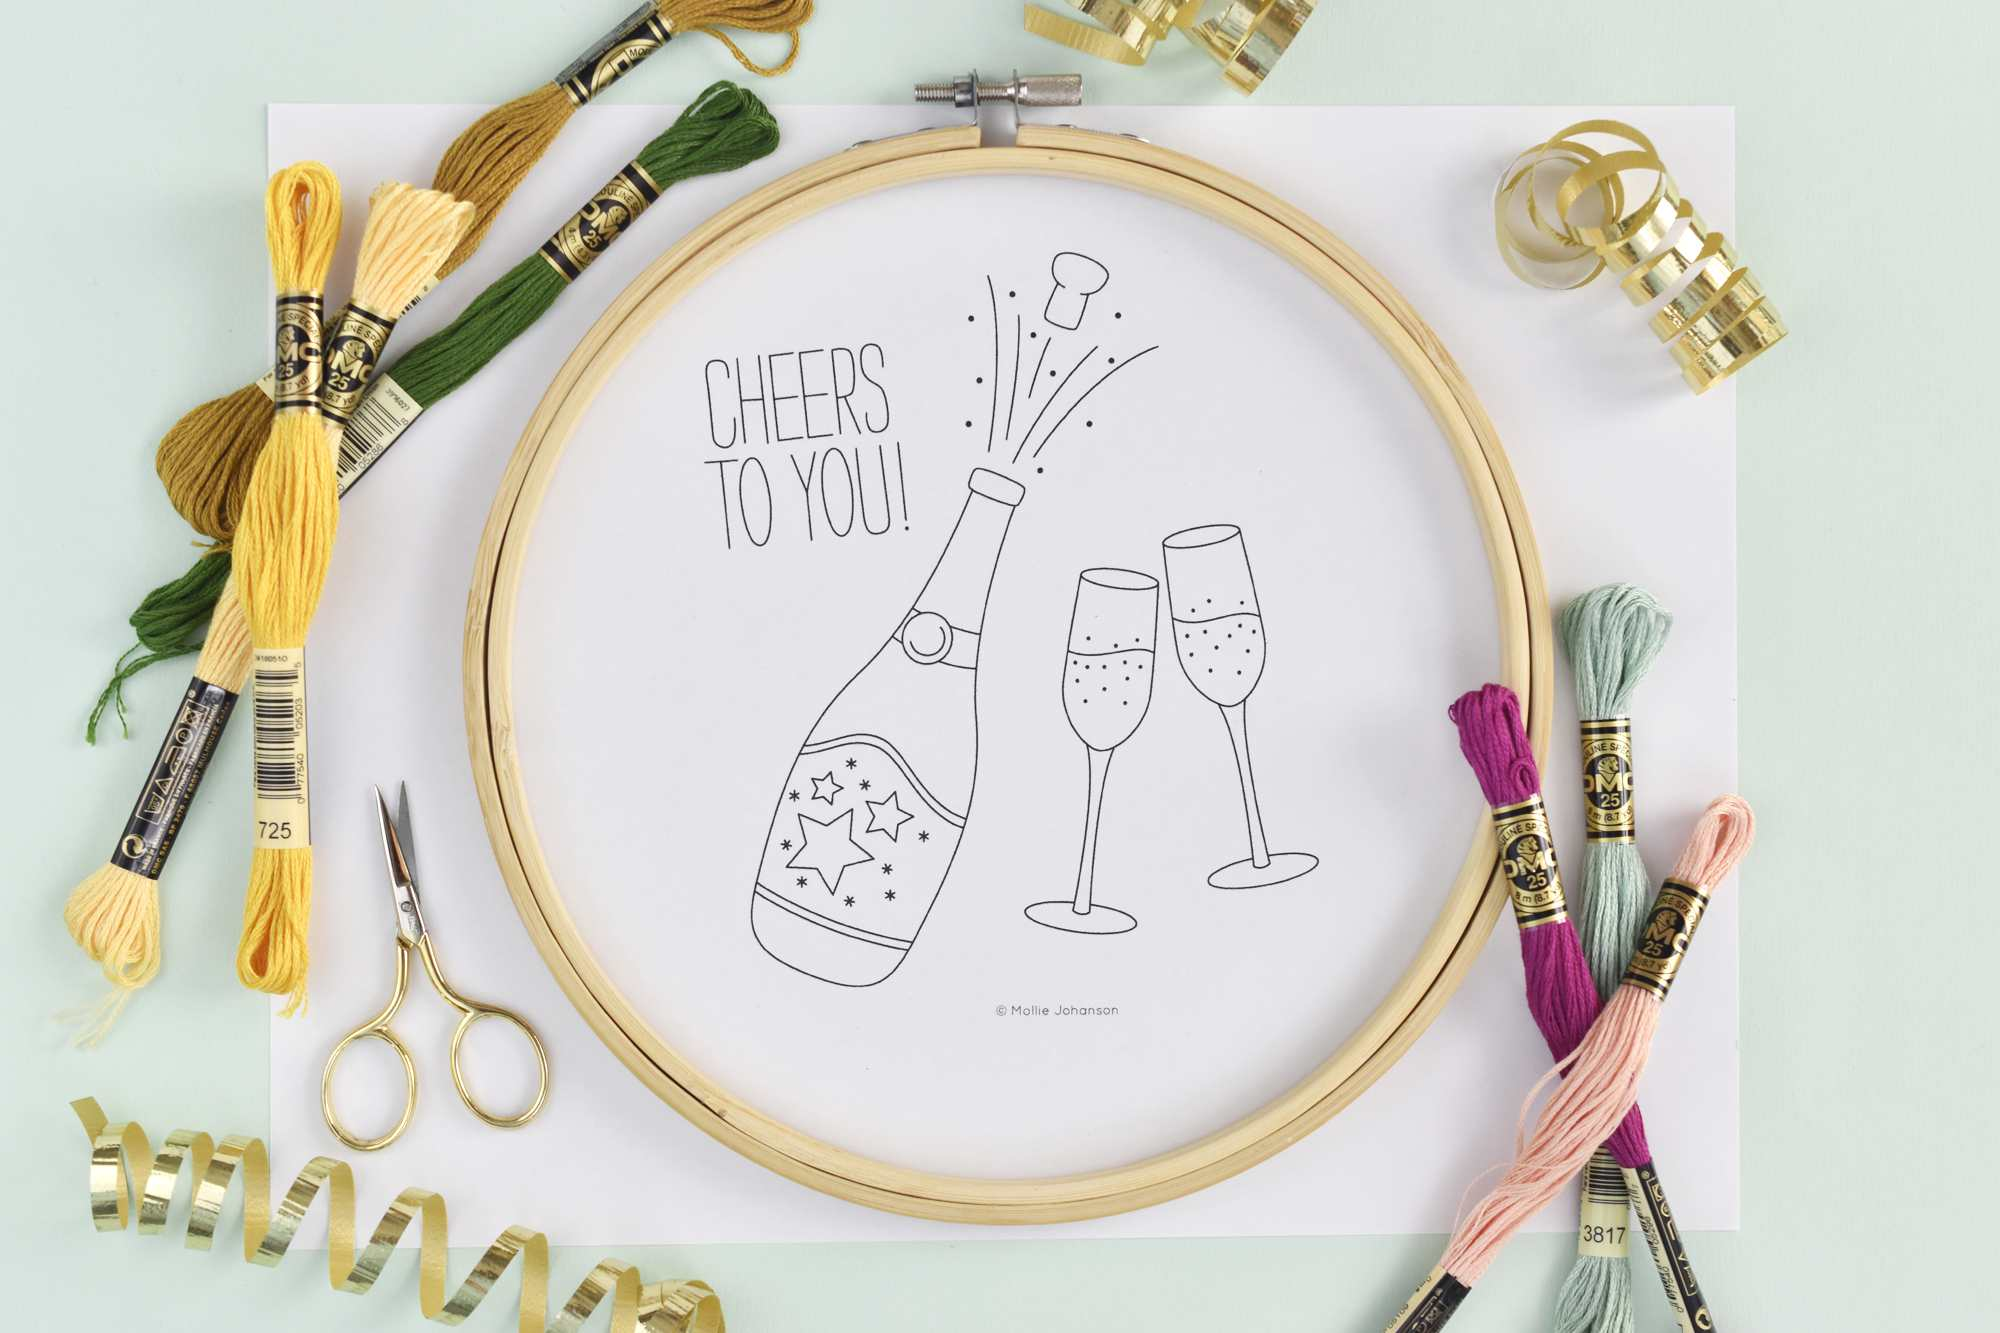 Celebration Champagne Toast Free Embroidery Design Vintage Sewing Machine Threading Guides Stitch Nerd